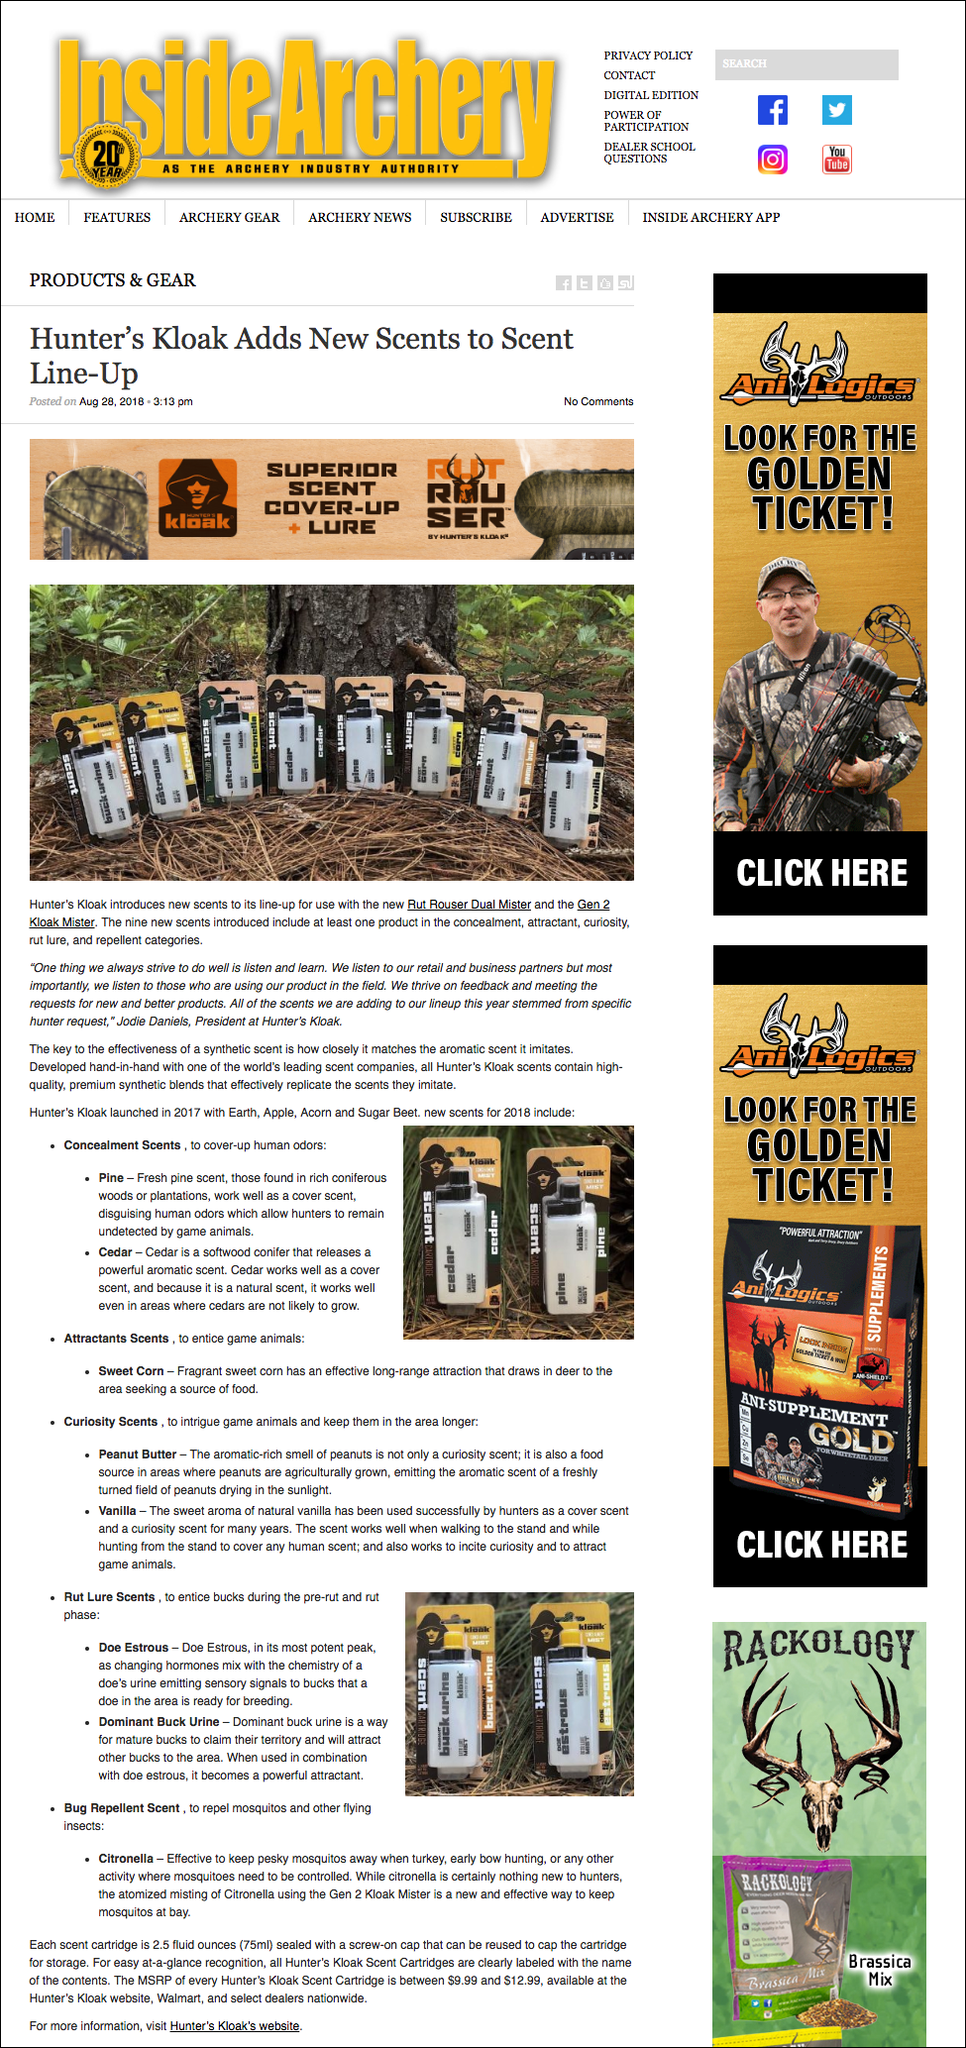 Hunter's Kloak Introduces the NEW Scents on insidearchery.com